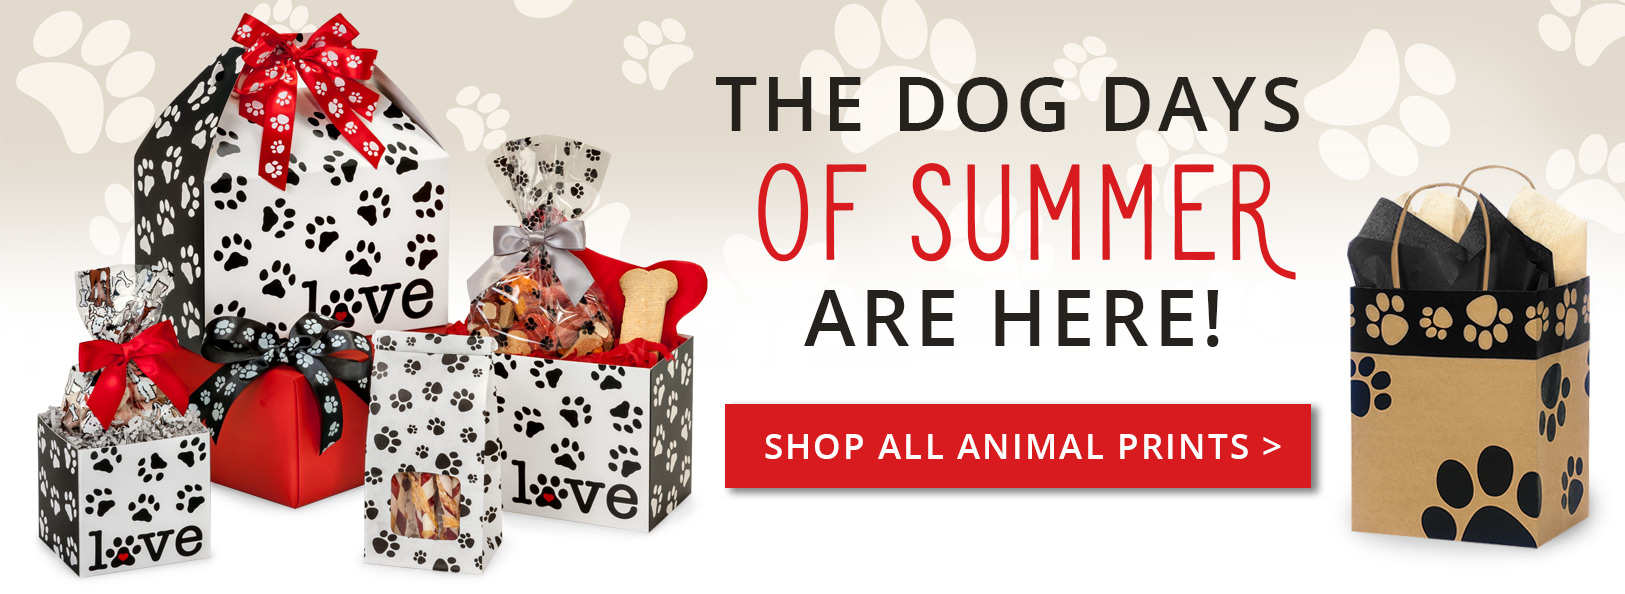 ANIMAL AND PAW PRINTS  - SHOP NOW